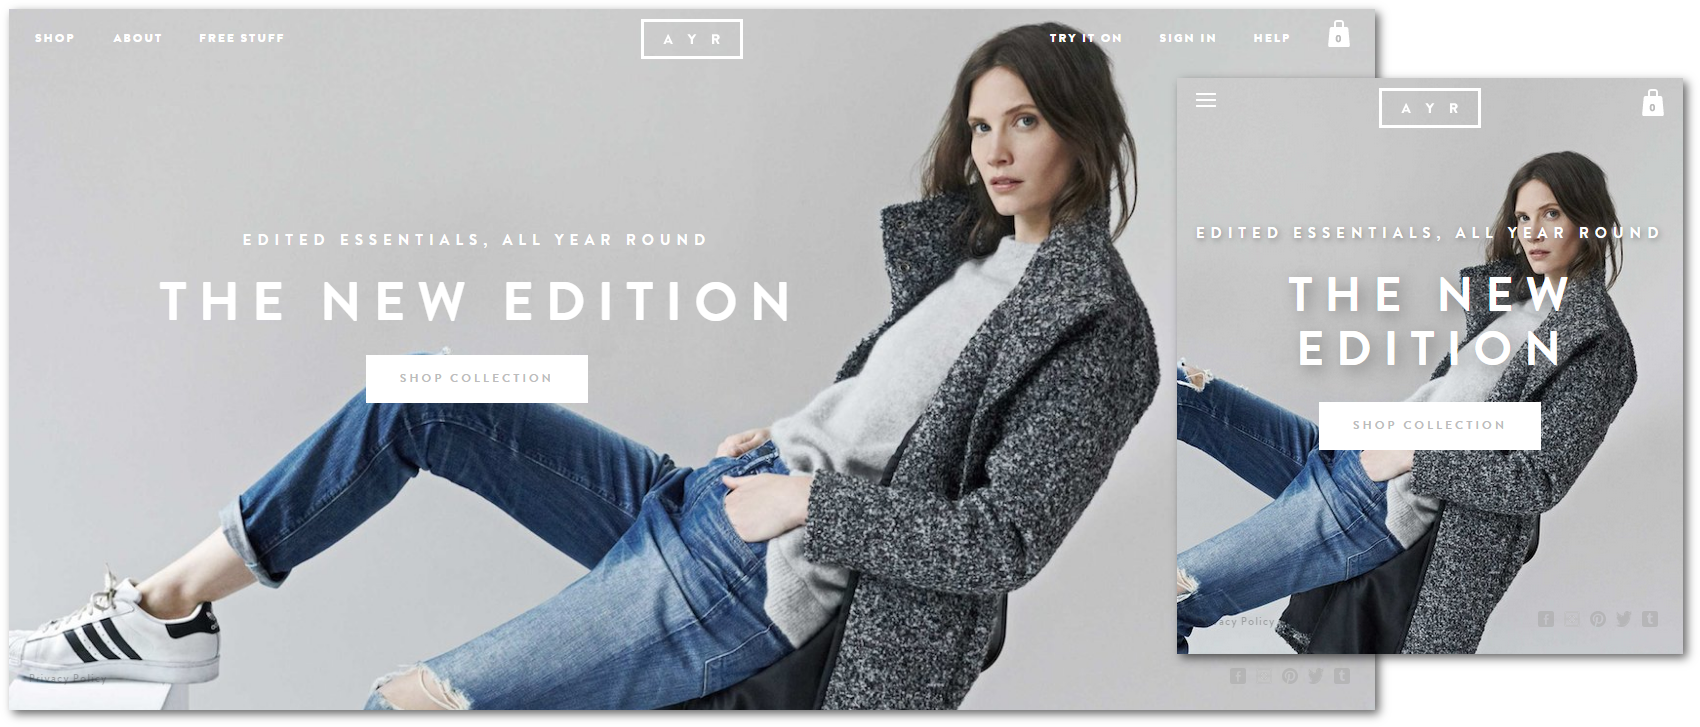 Fashion eCommerce Responsive Design